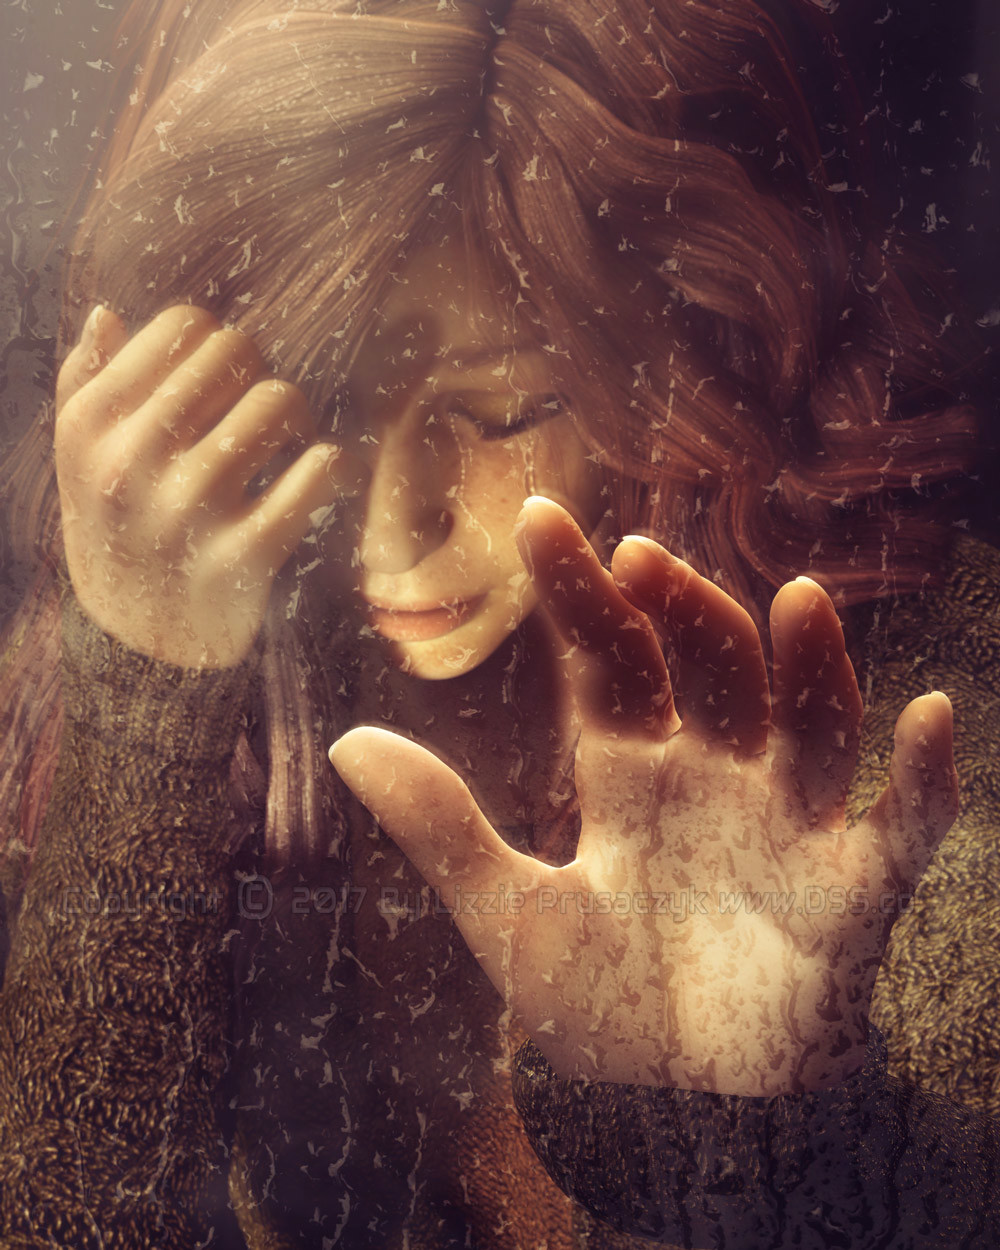 Tears like the rain, emotions like seasons; they arrive and leave but will always come again only to once again leave.